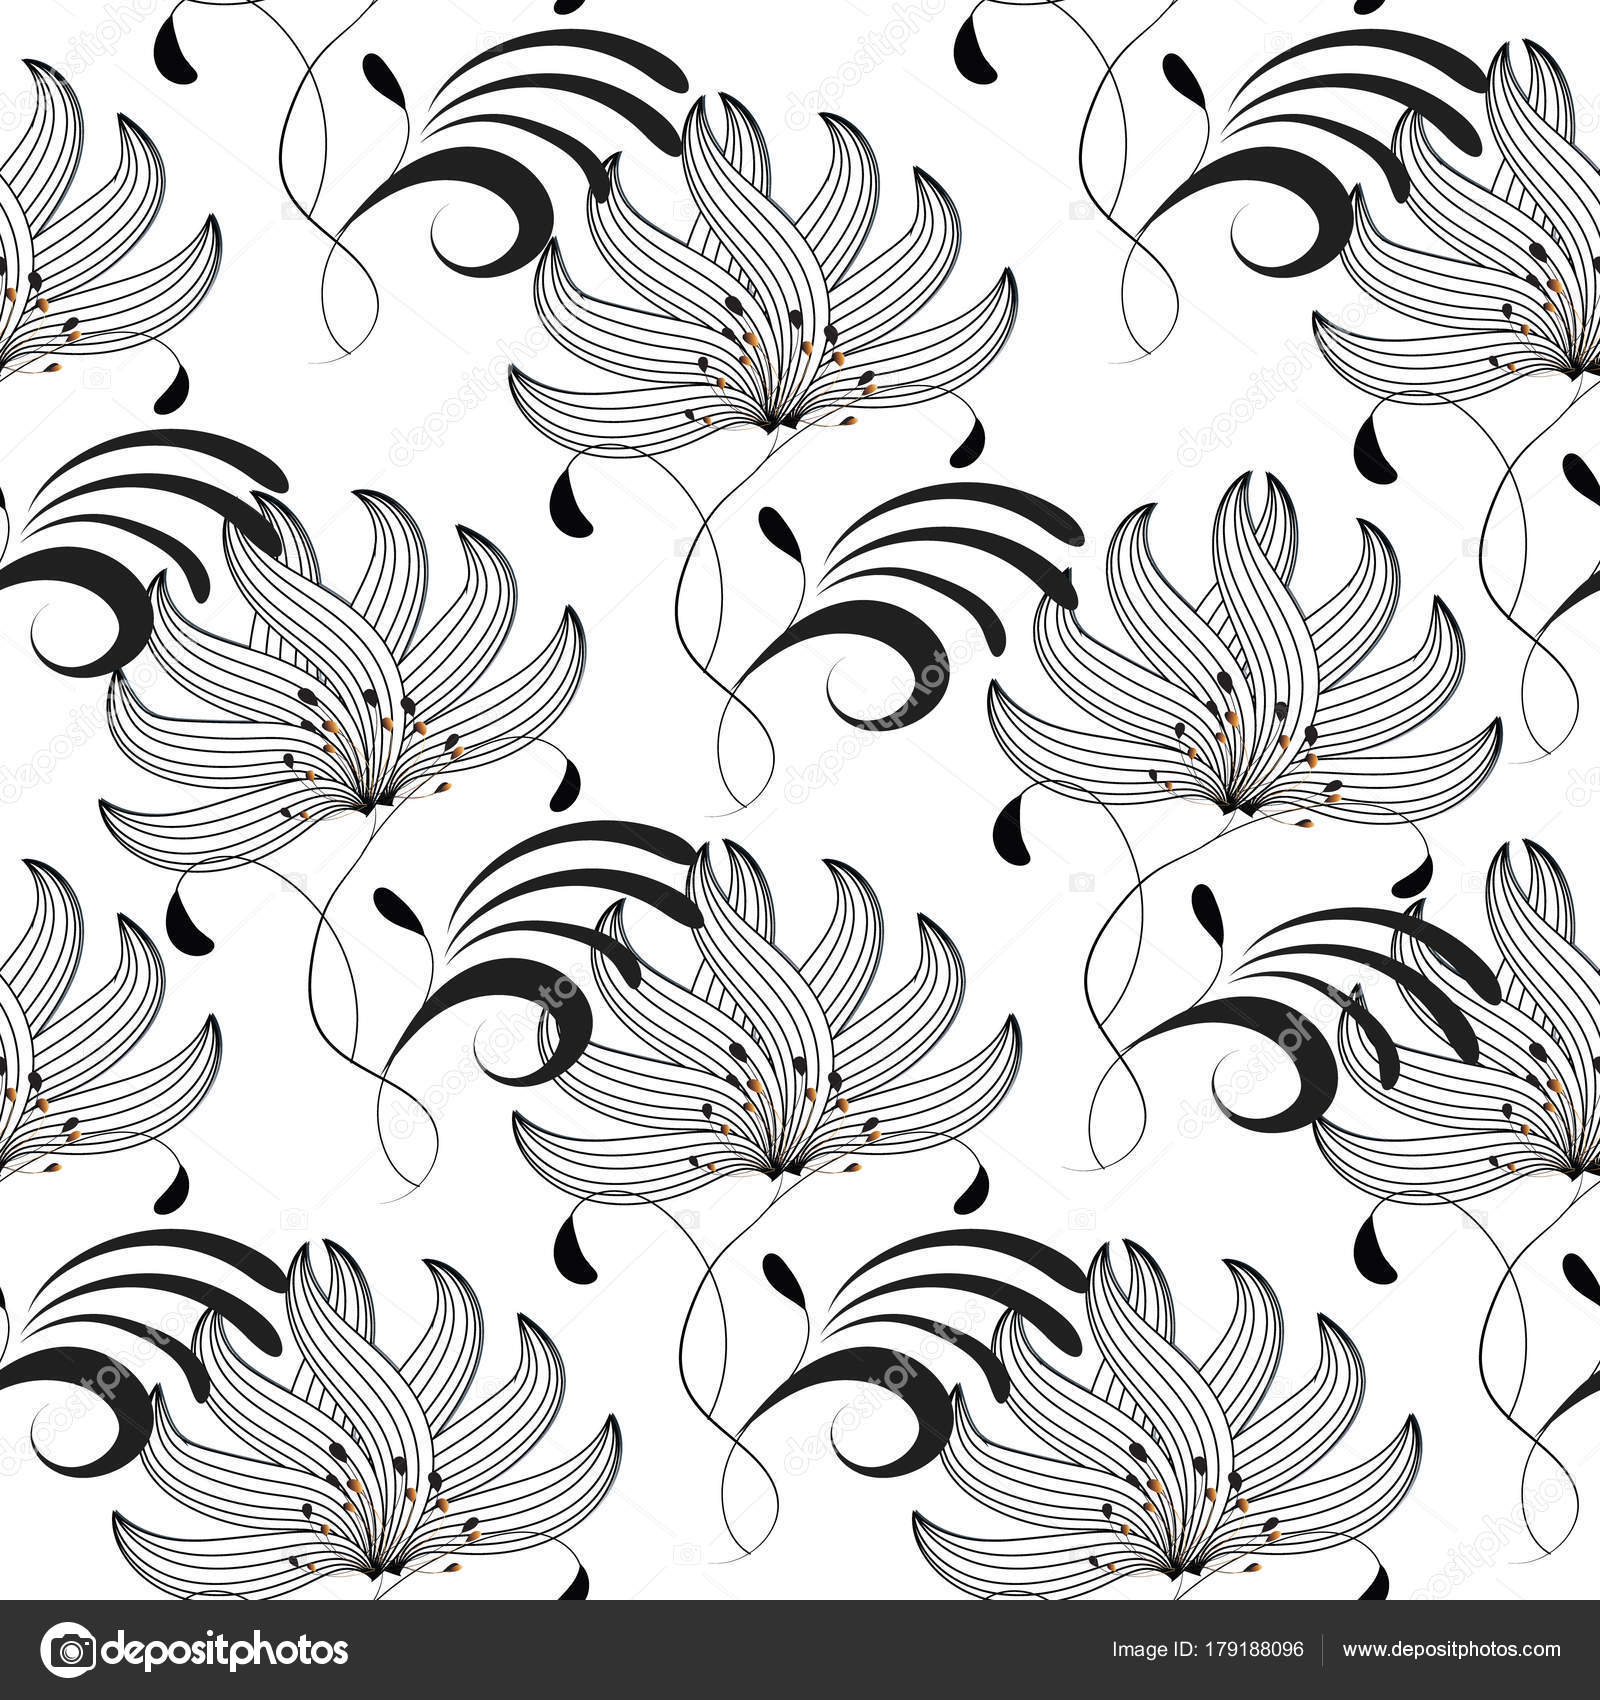 Floral Seamless Pattern Black White Isolated Vector Texture